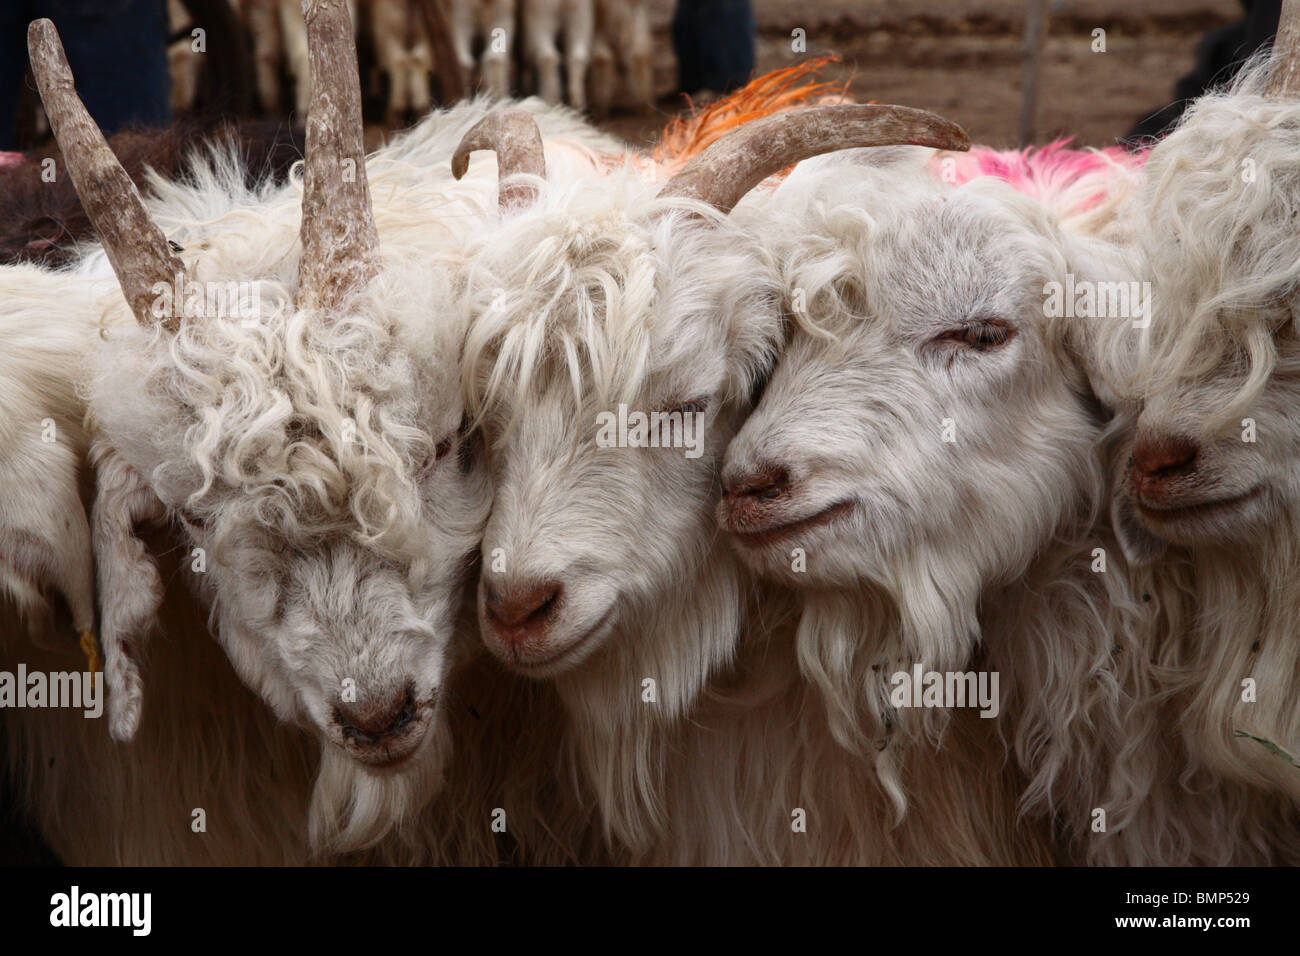 Young goats being prepared and groomed for sale in the Kashgar farmers market, Kashgar, Western Xinjiang province, - Stock Image